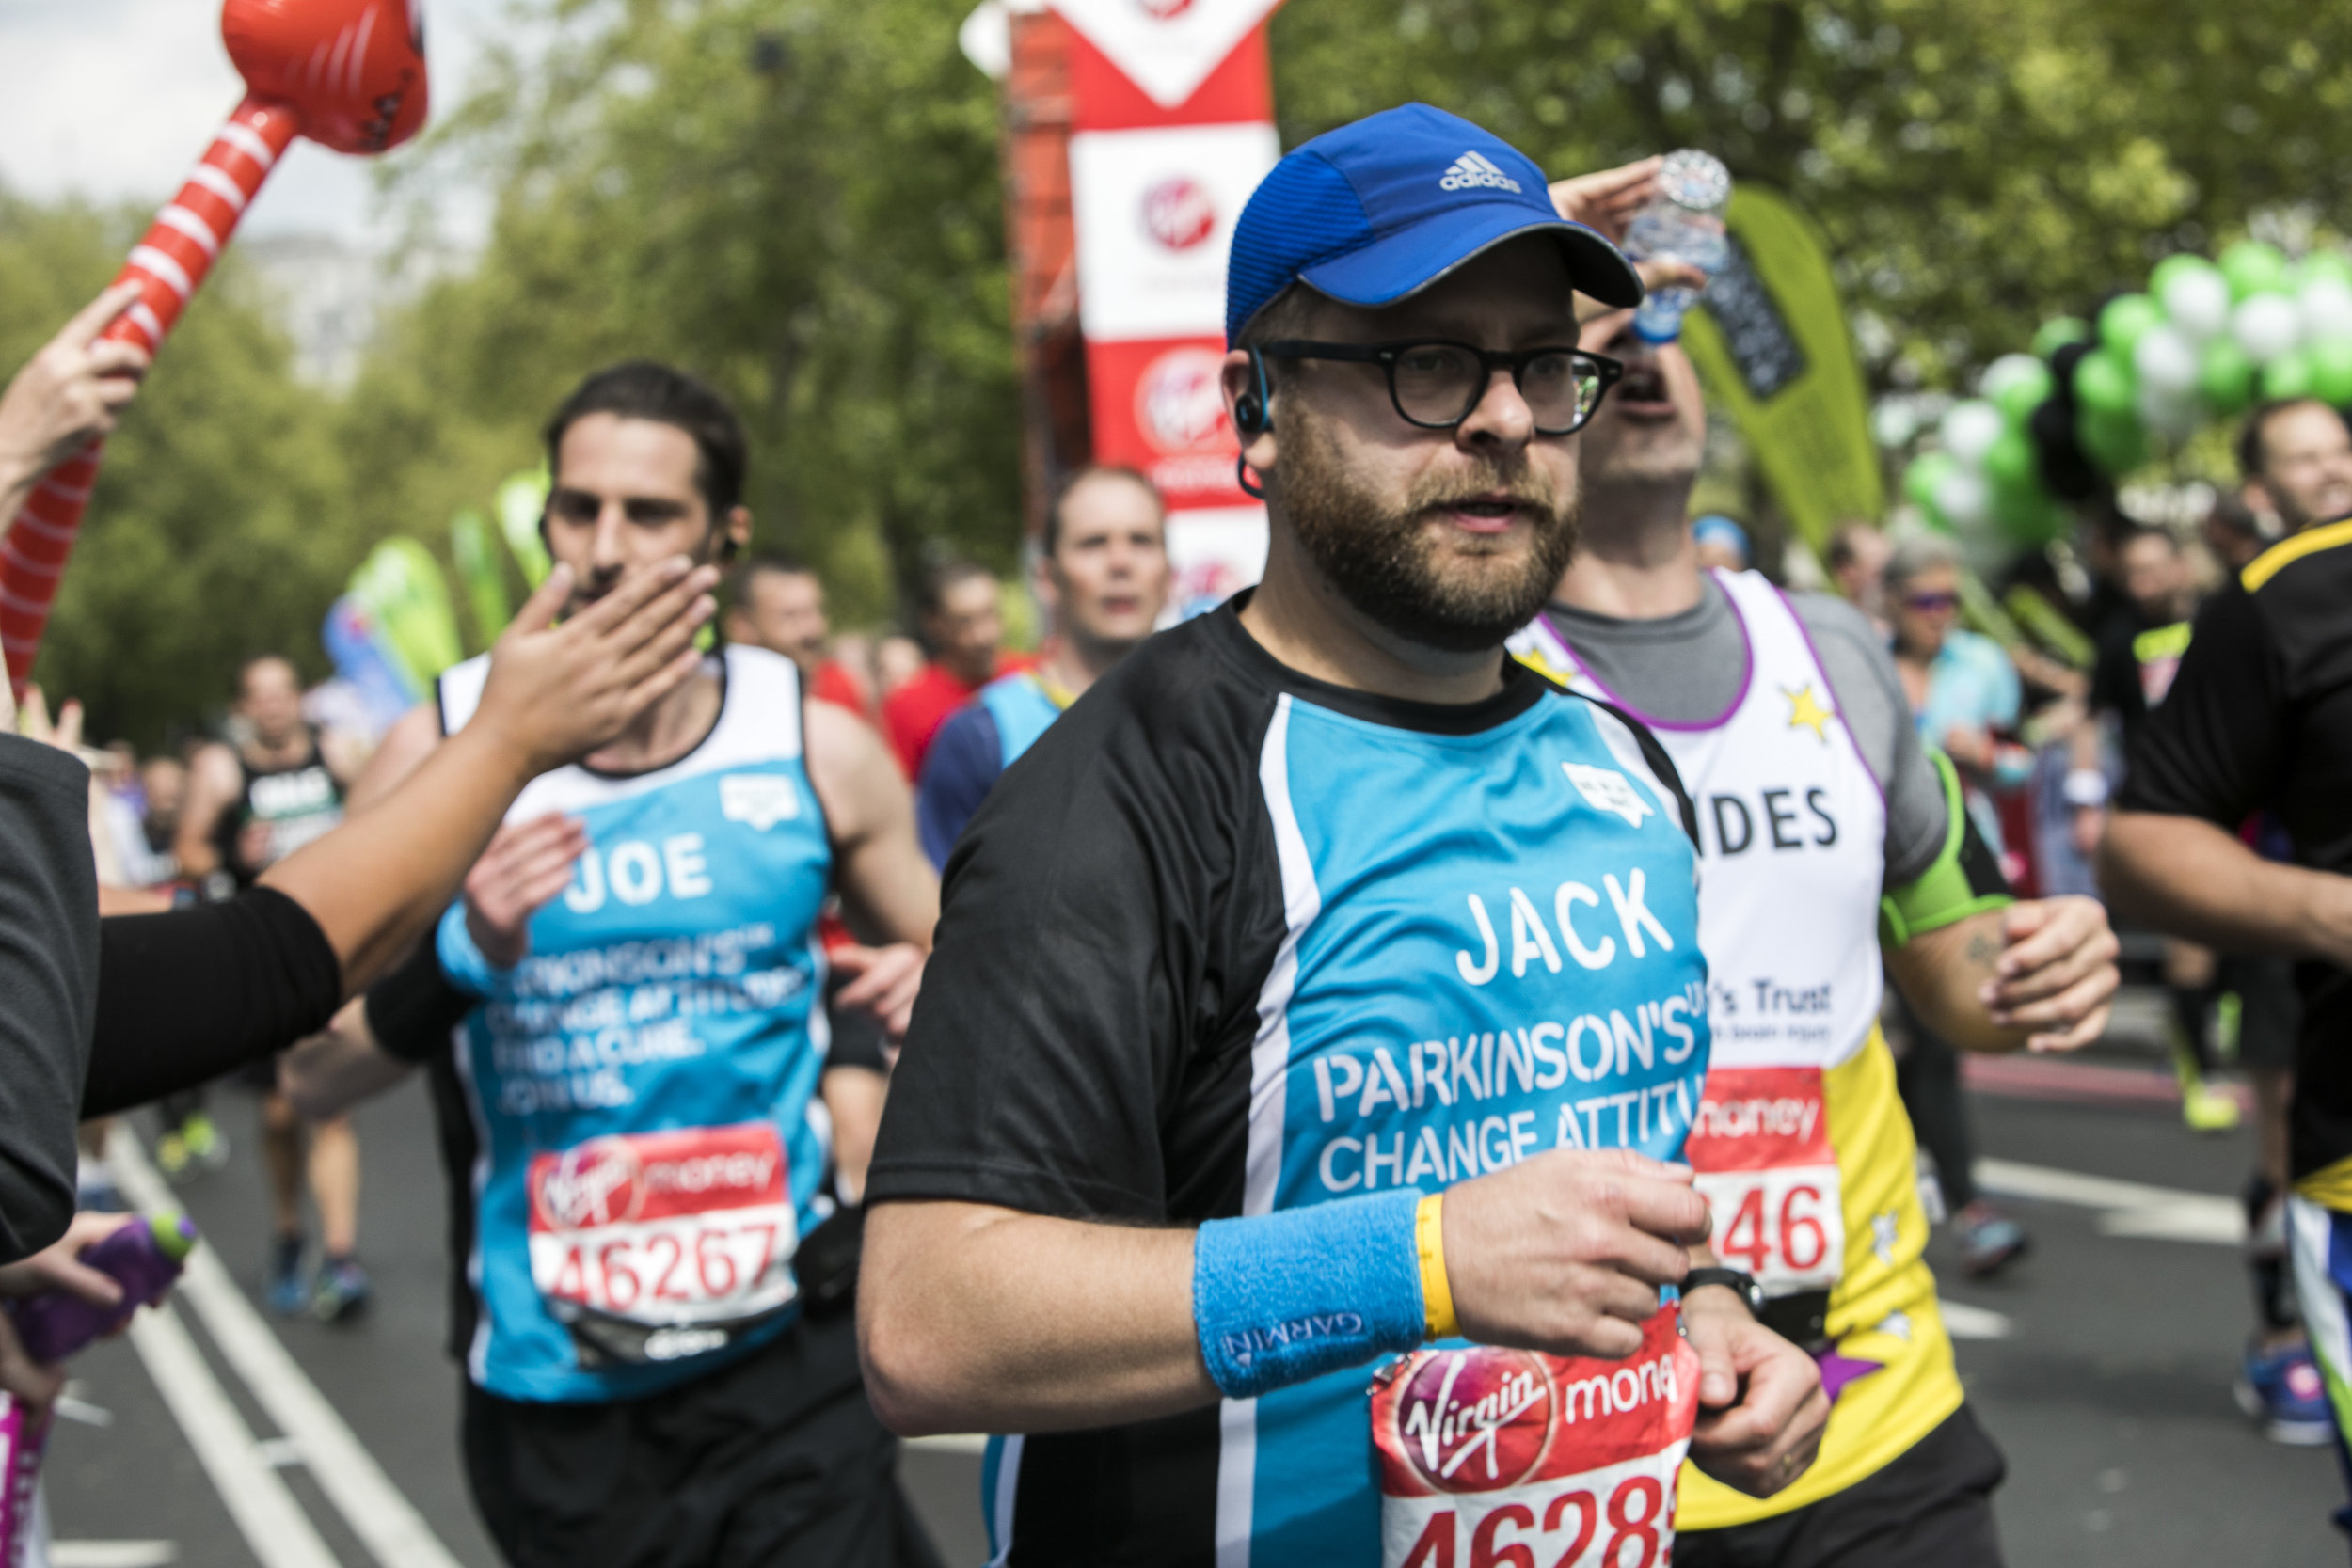 Let's Get Running runner Jack Warner smashing his target at last years London Marathon